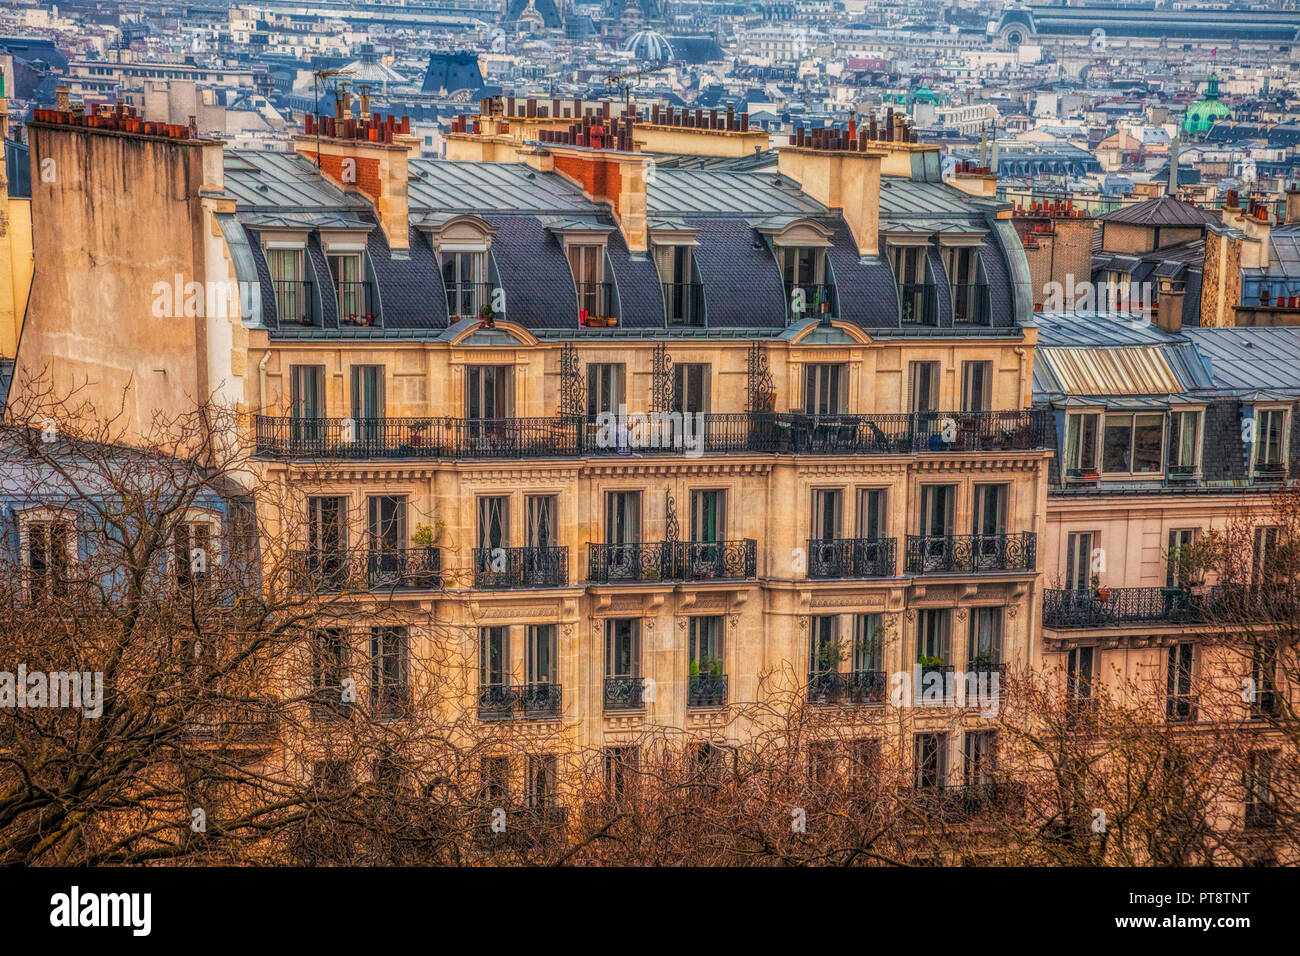 Traditional building in Paris, France - Stock Image